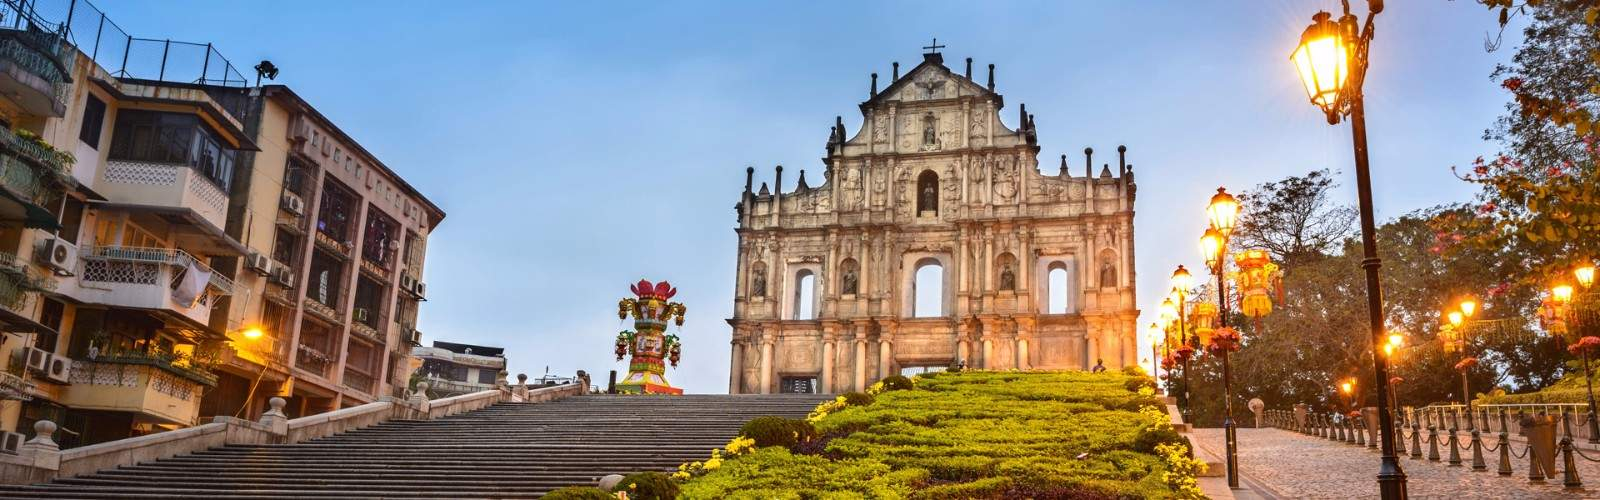 Macao Tour | Wendy Wu Tours